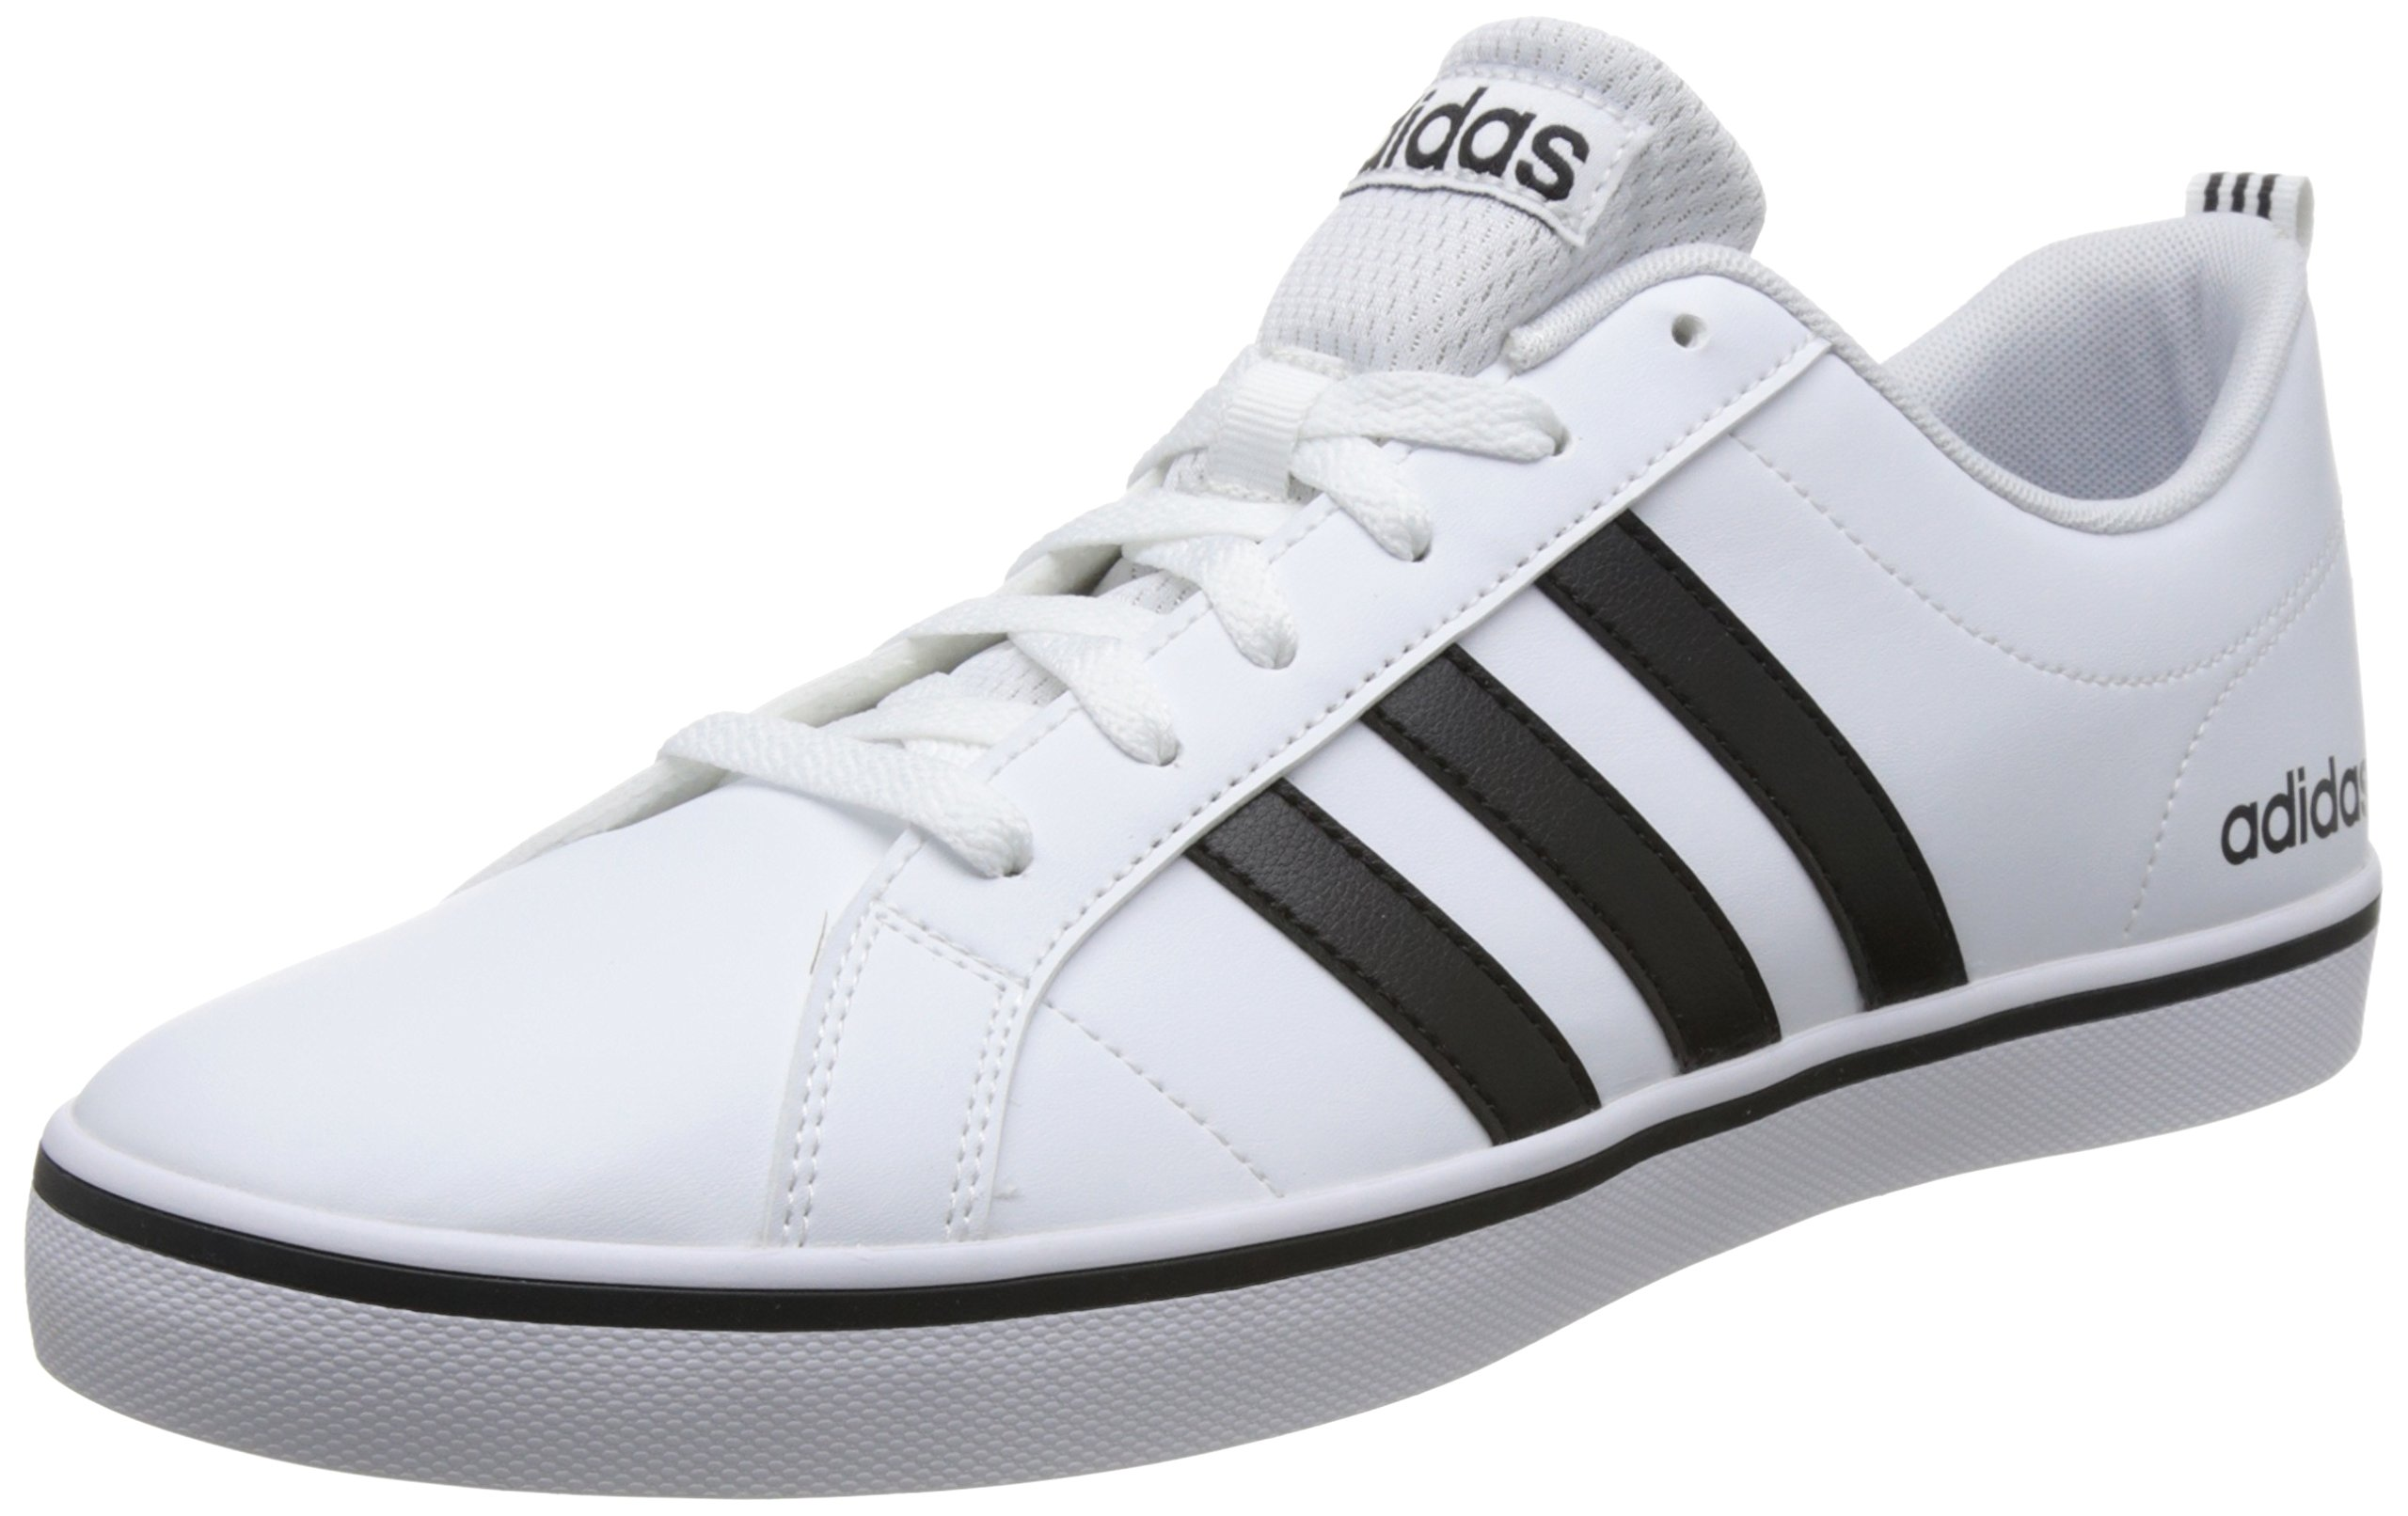 timeless design 78f16 25b74 Adidas Pace Vs chaussures de sport, Homme, blanc, XX product image